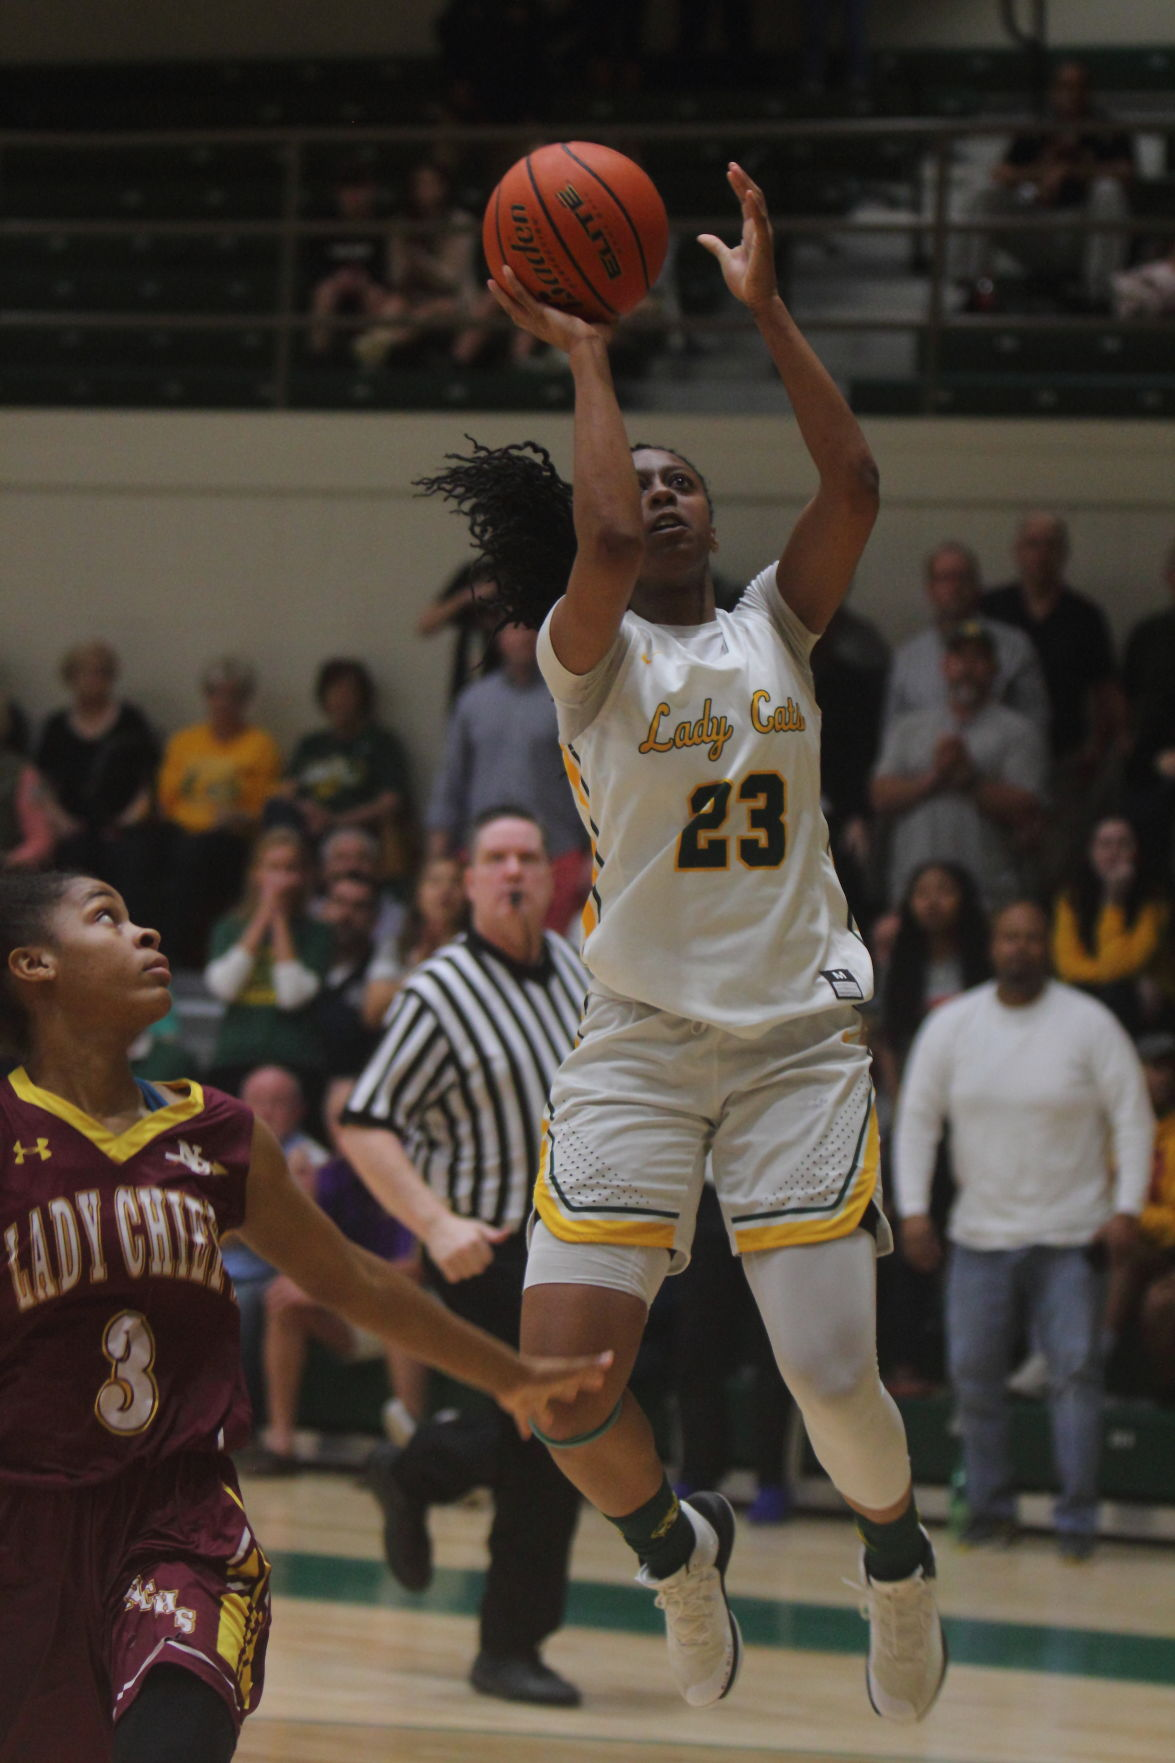 Walker girls basketball vs. Natchitoches Central: Tiara Young